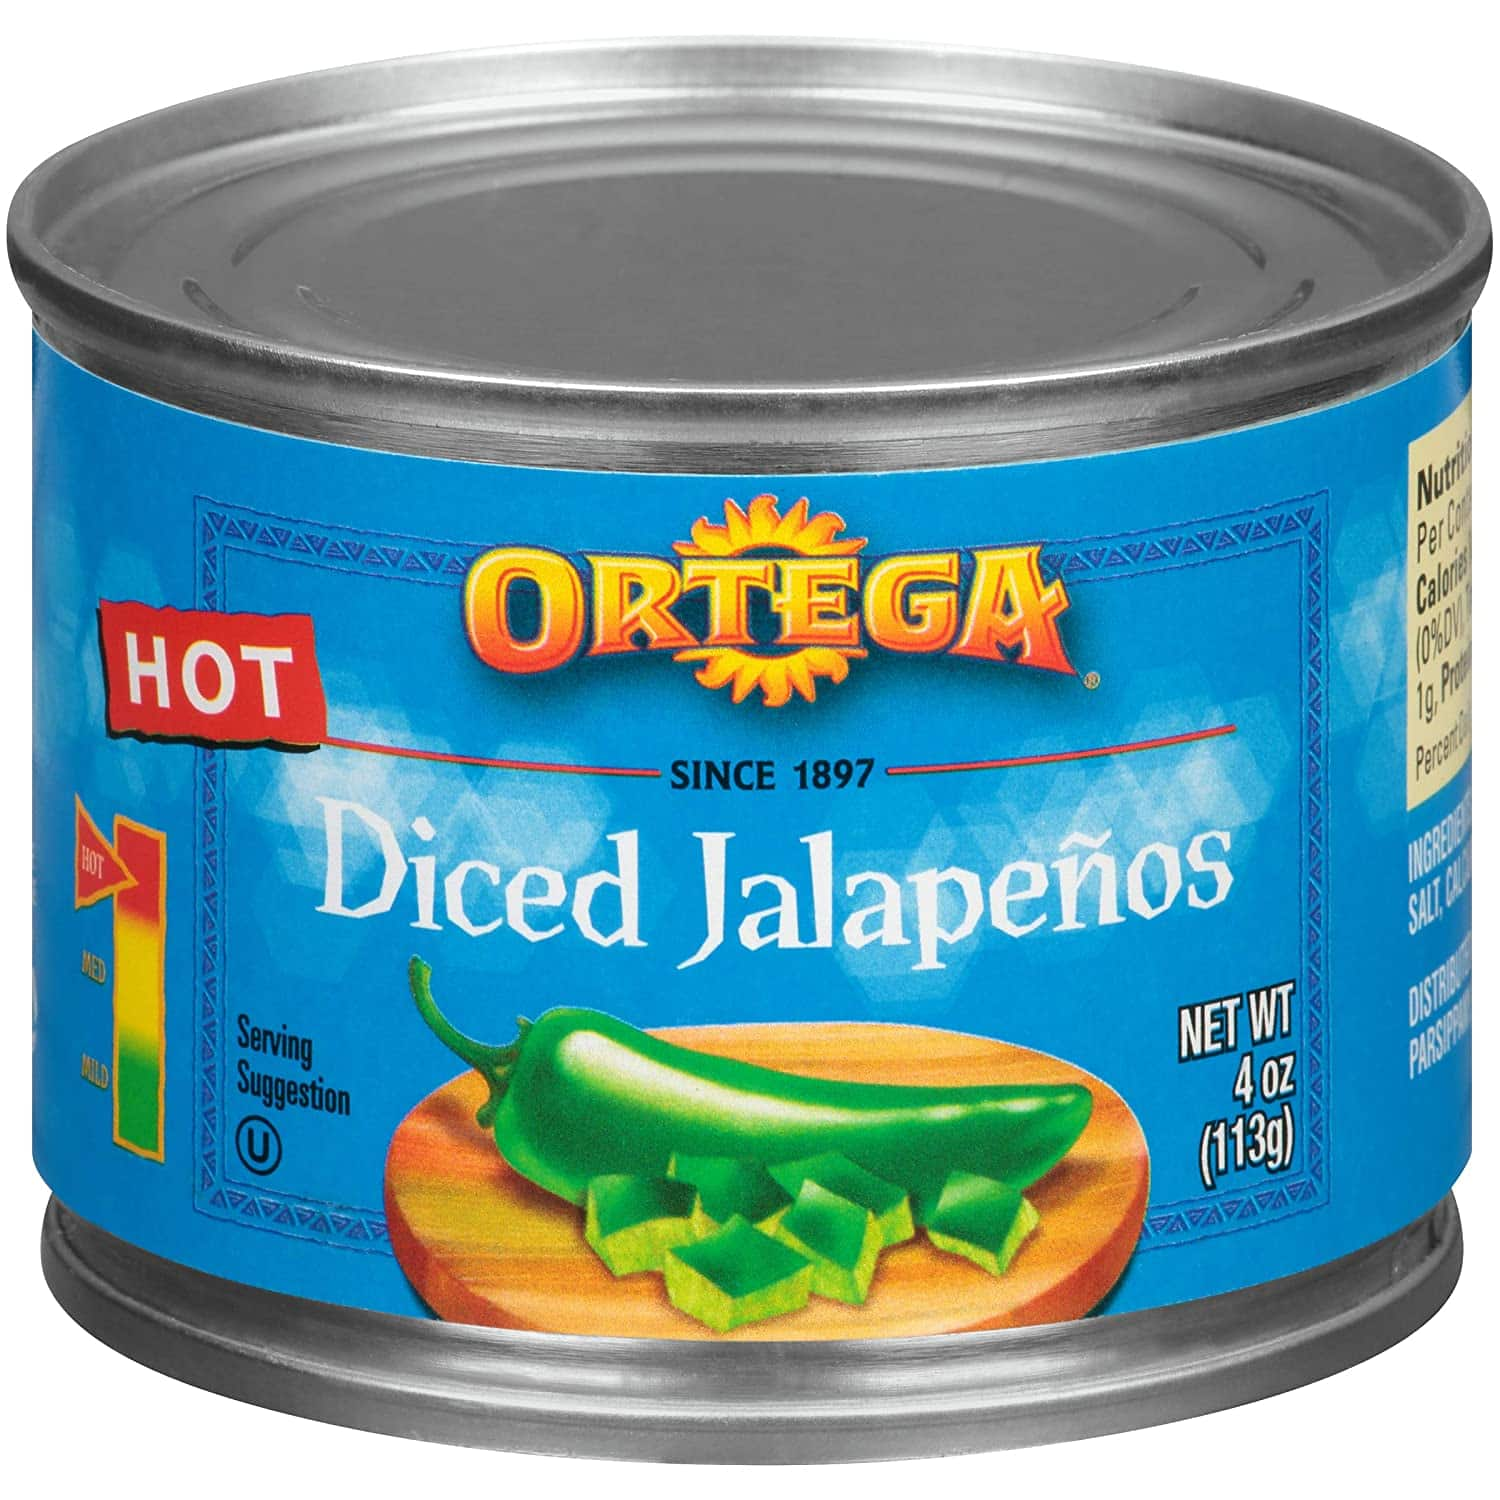 (24-Pack) Ortega Peppers, Diced Jalapenos, Hot, 4 Ounce $11.85 - FS w/ S&S